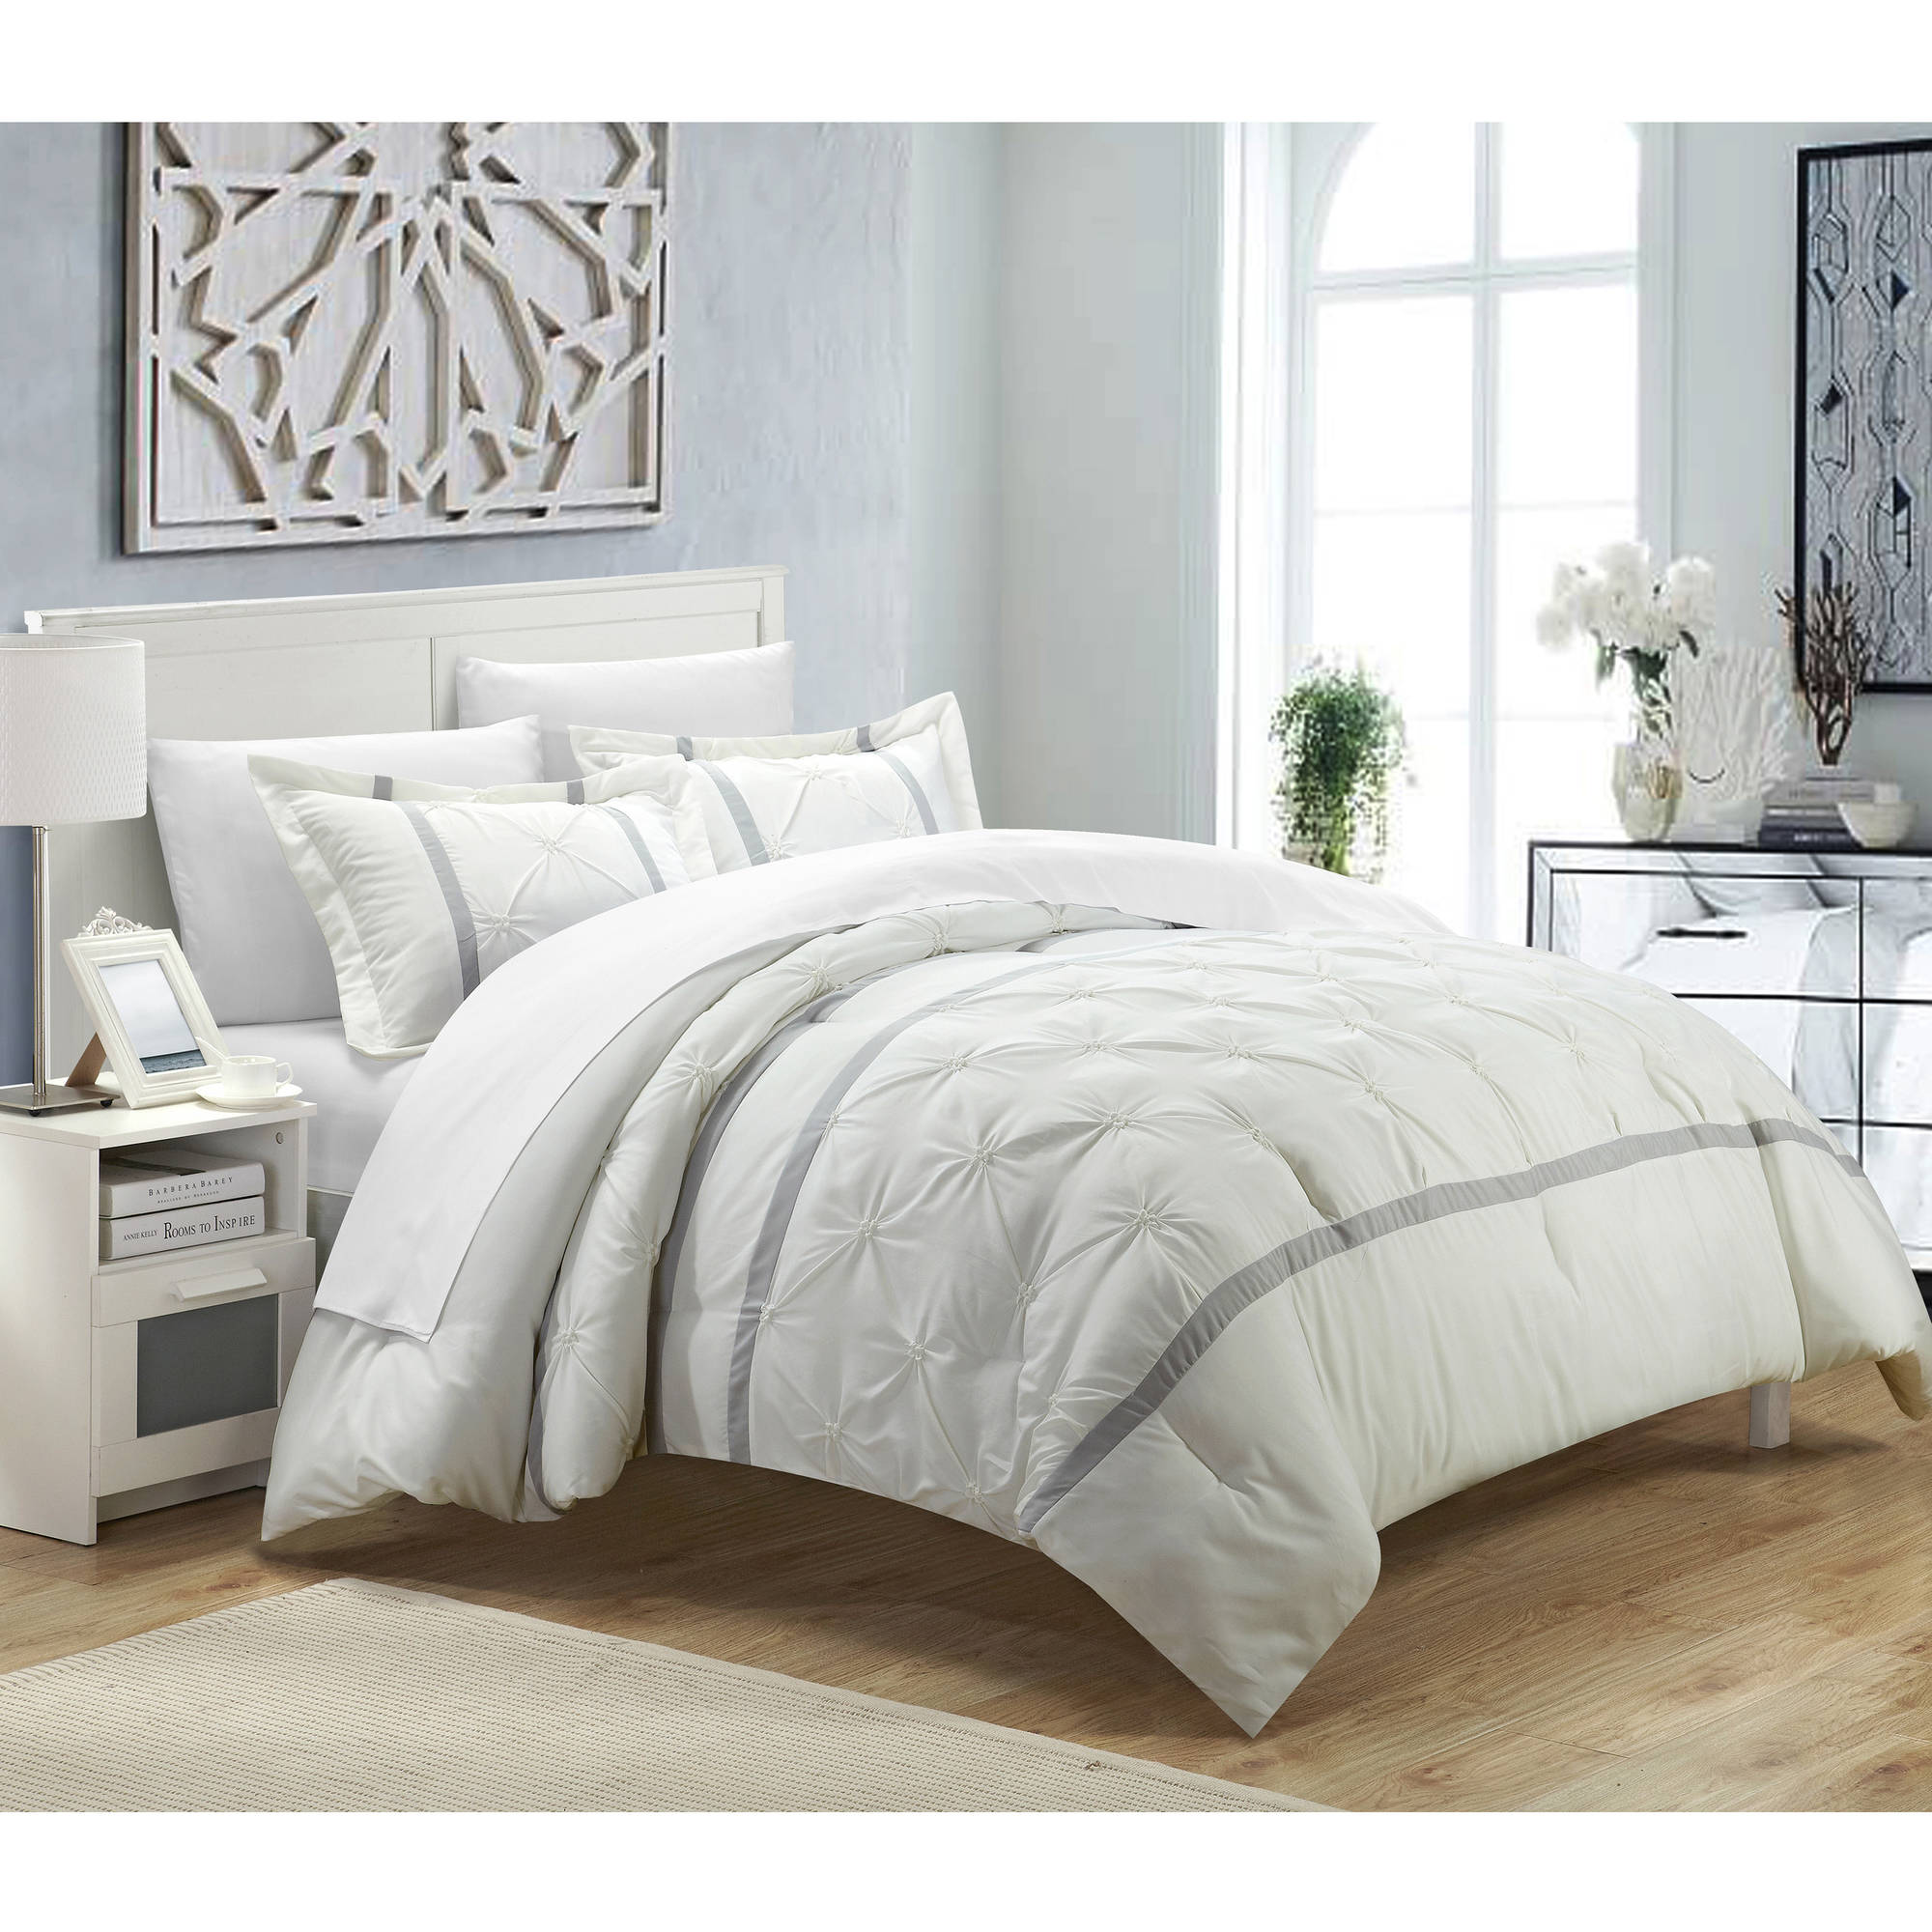 find shopping quotations white on beautiful diamond girls get pleat set pleated pattern guides comforter tucked pin piece damask twin pintuck deals cheap pinch